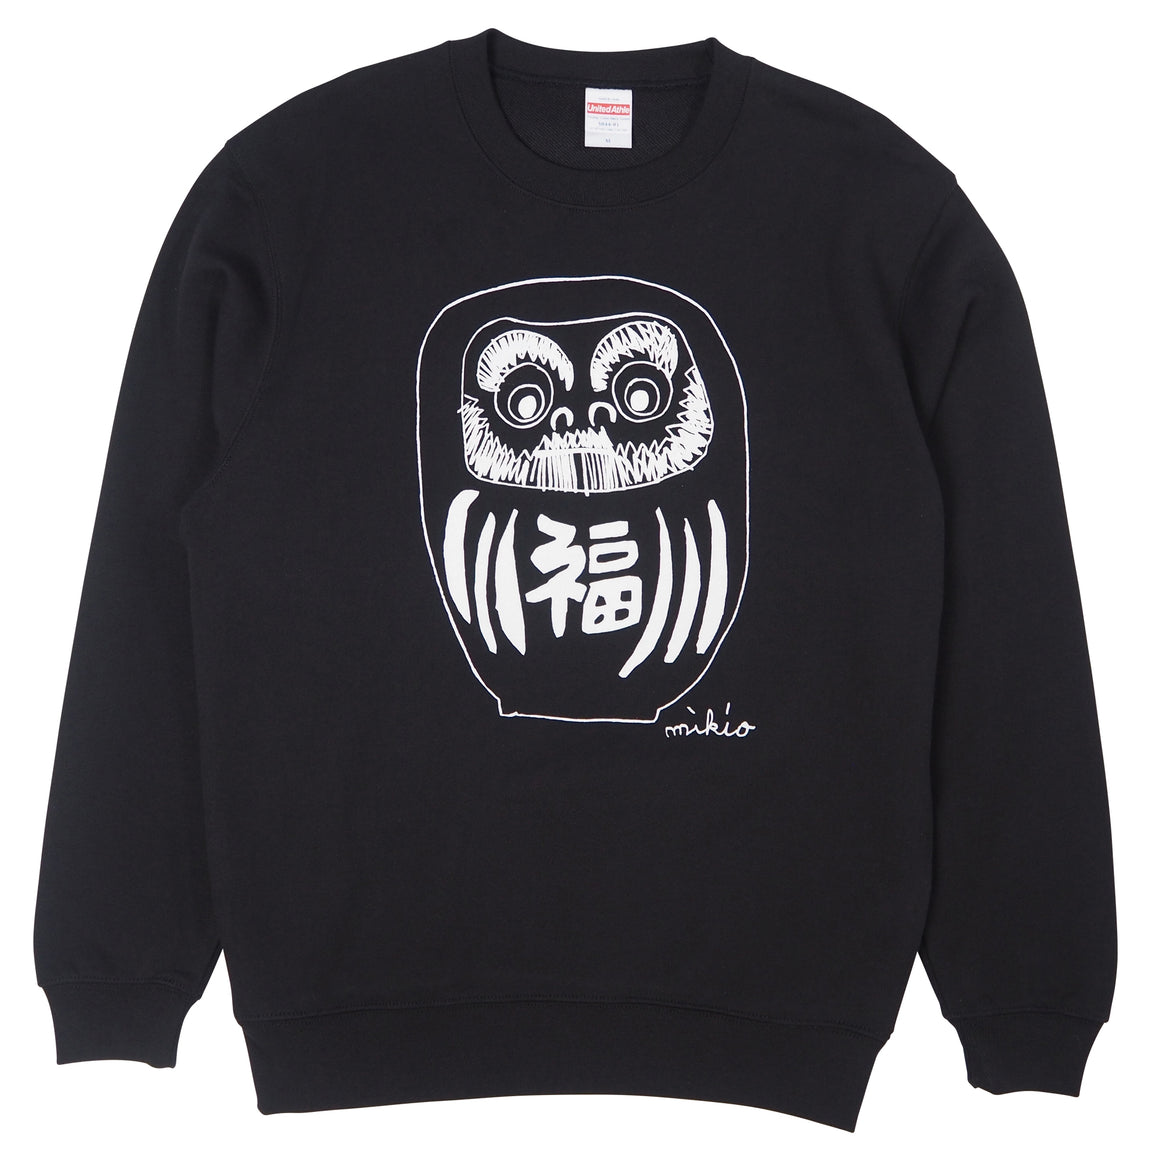 Daruma Adult's Sweatshirt